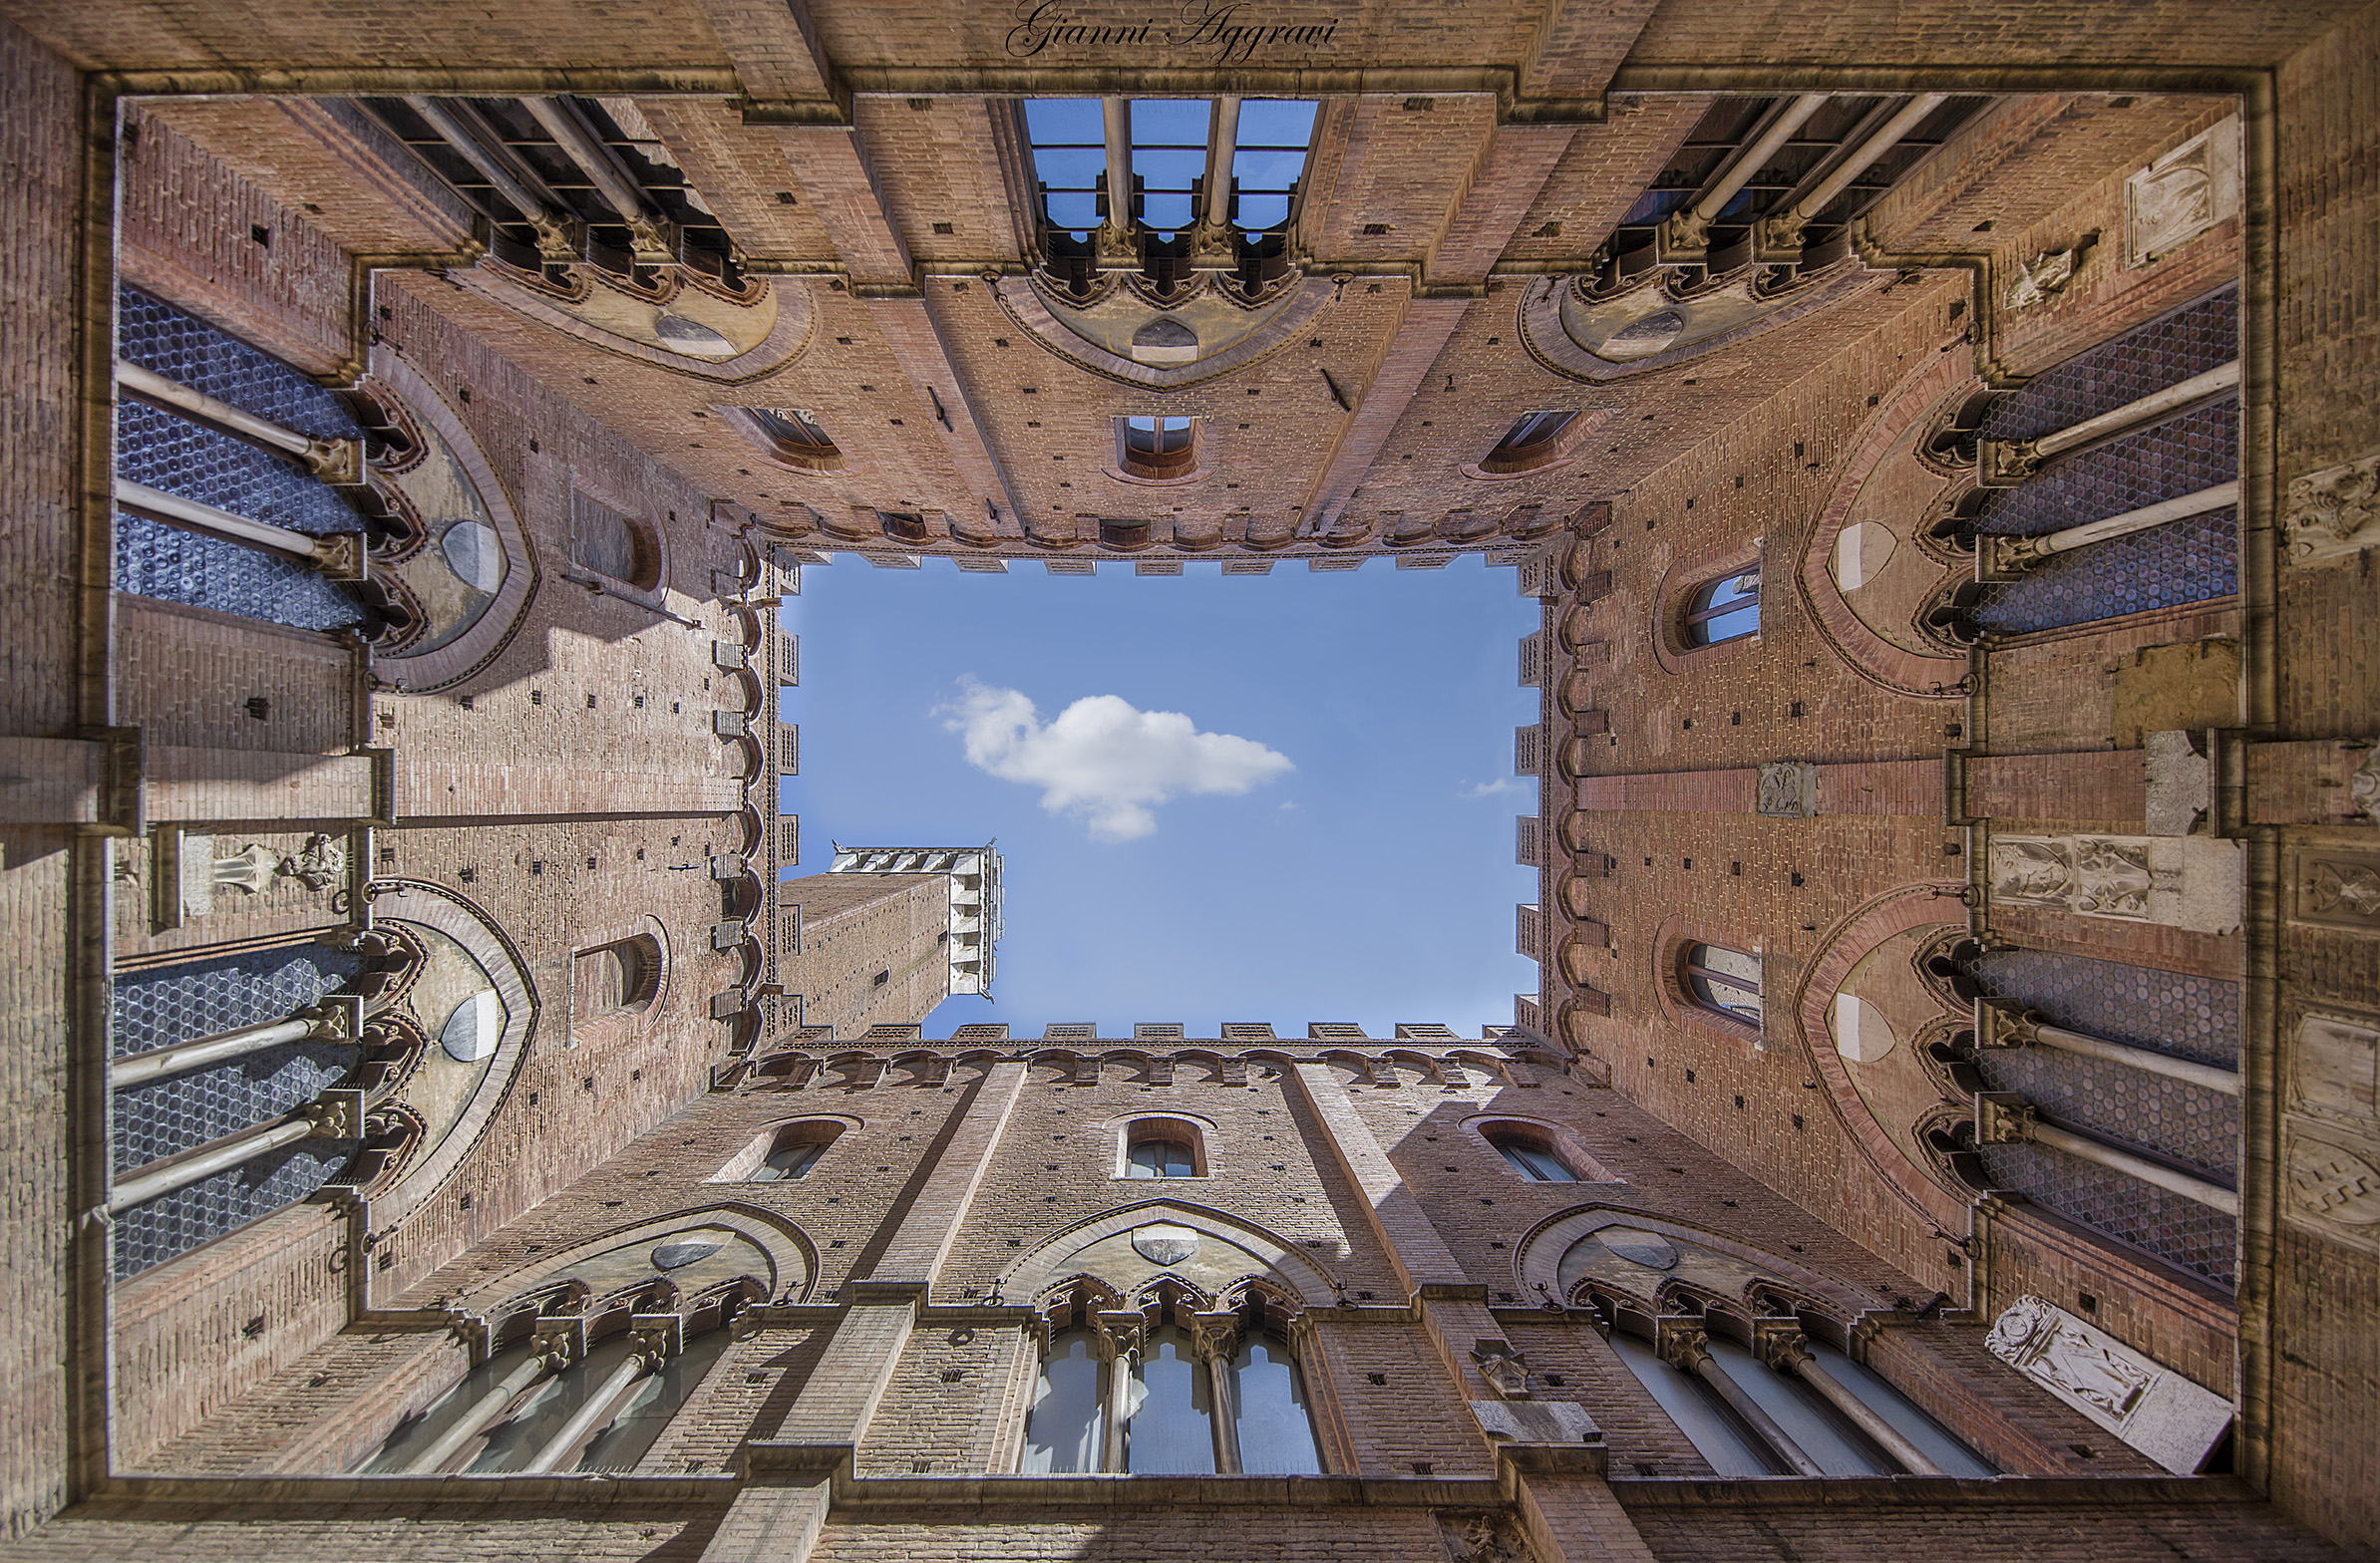 Palace of the Prior (siena)...